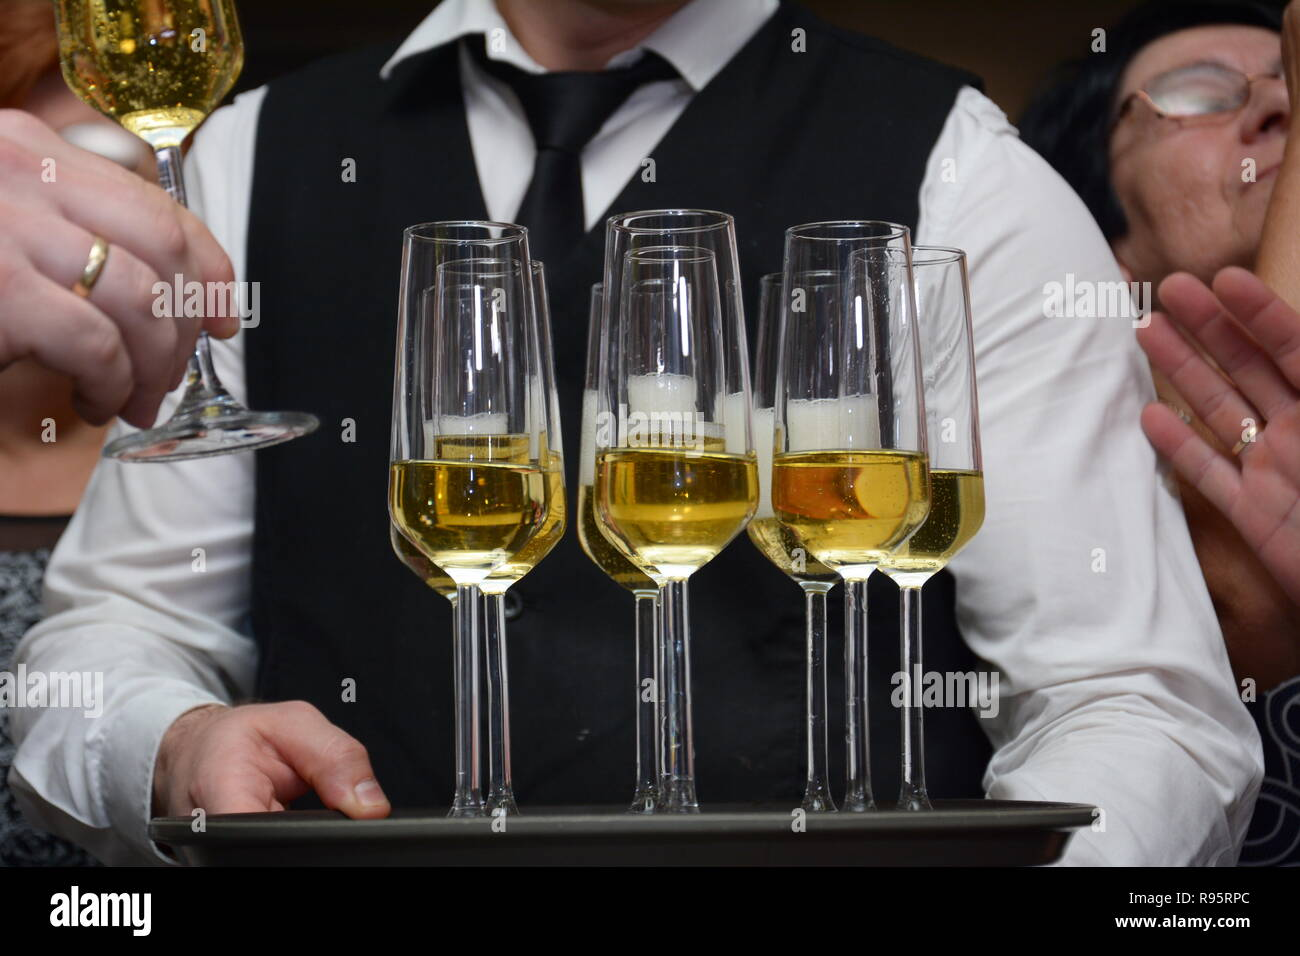 Case with wine - Stock Image